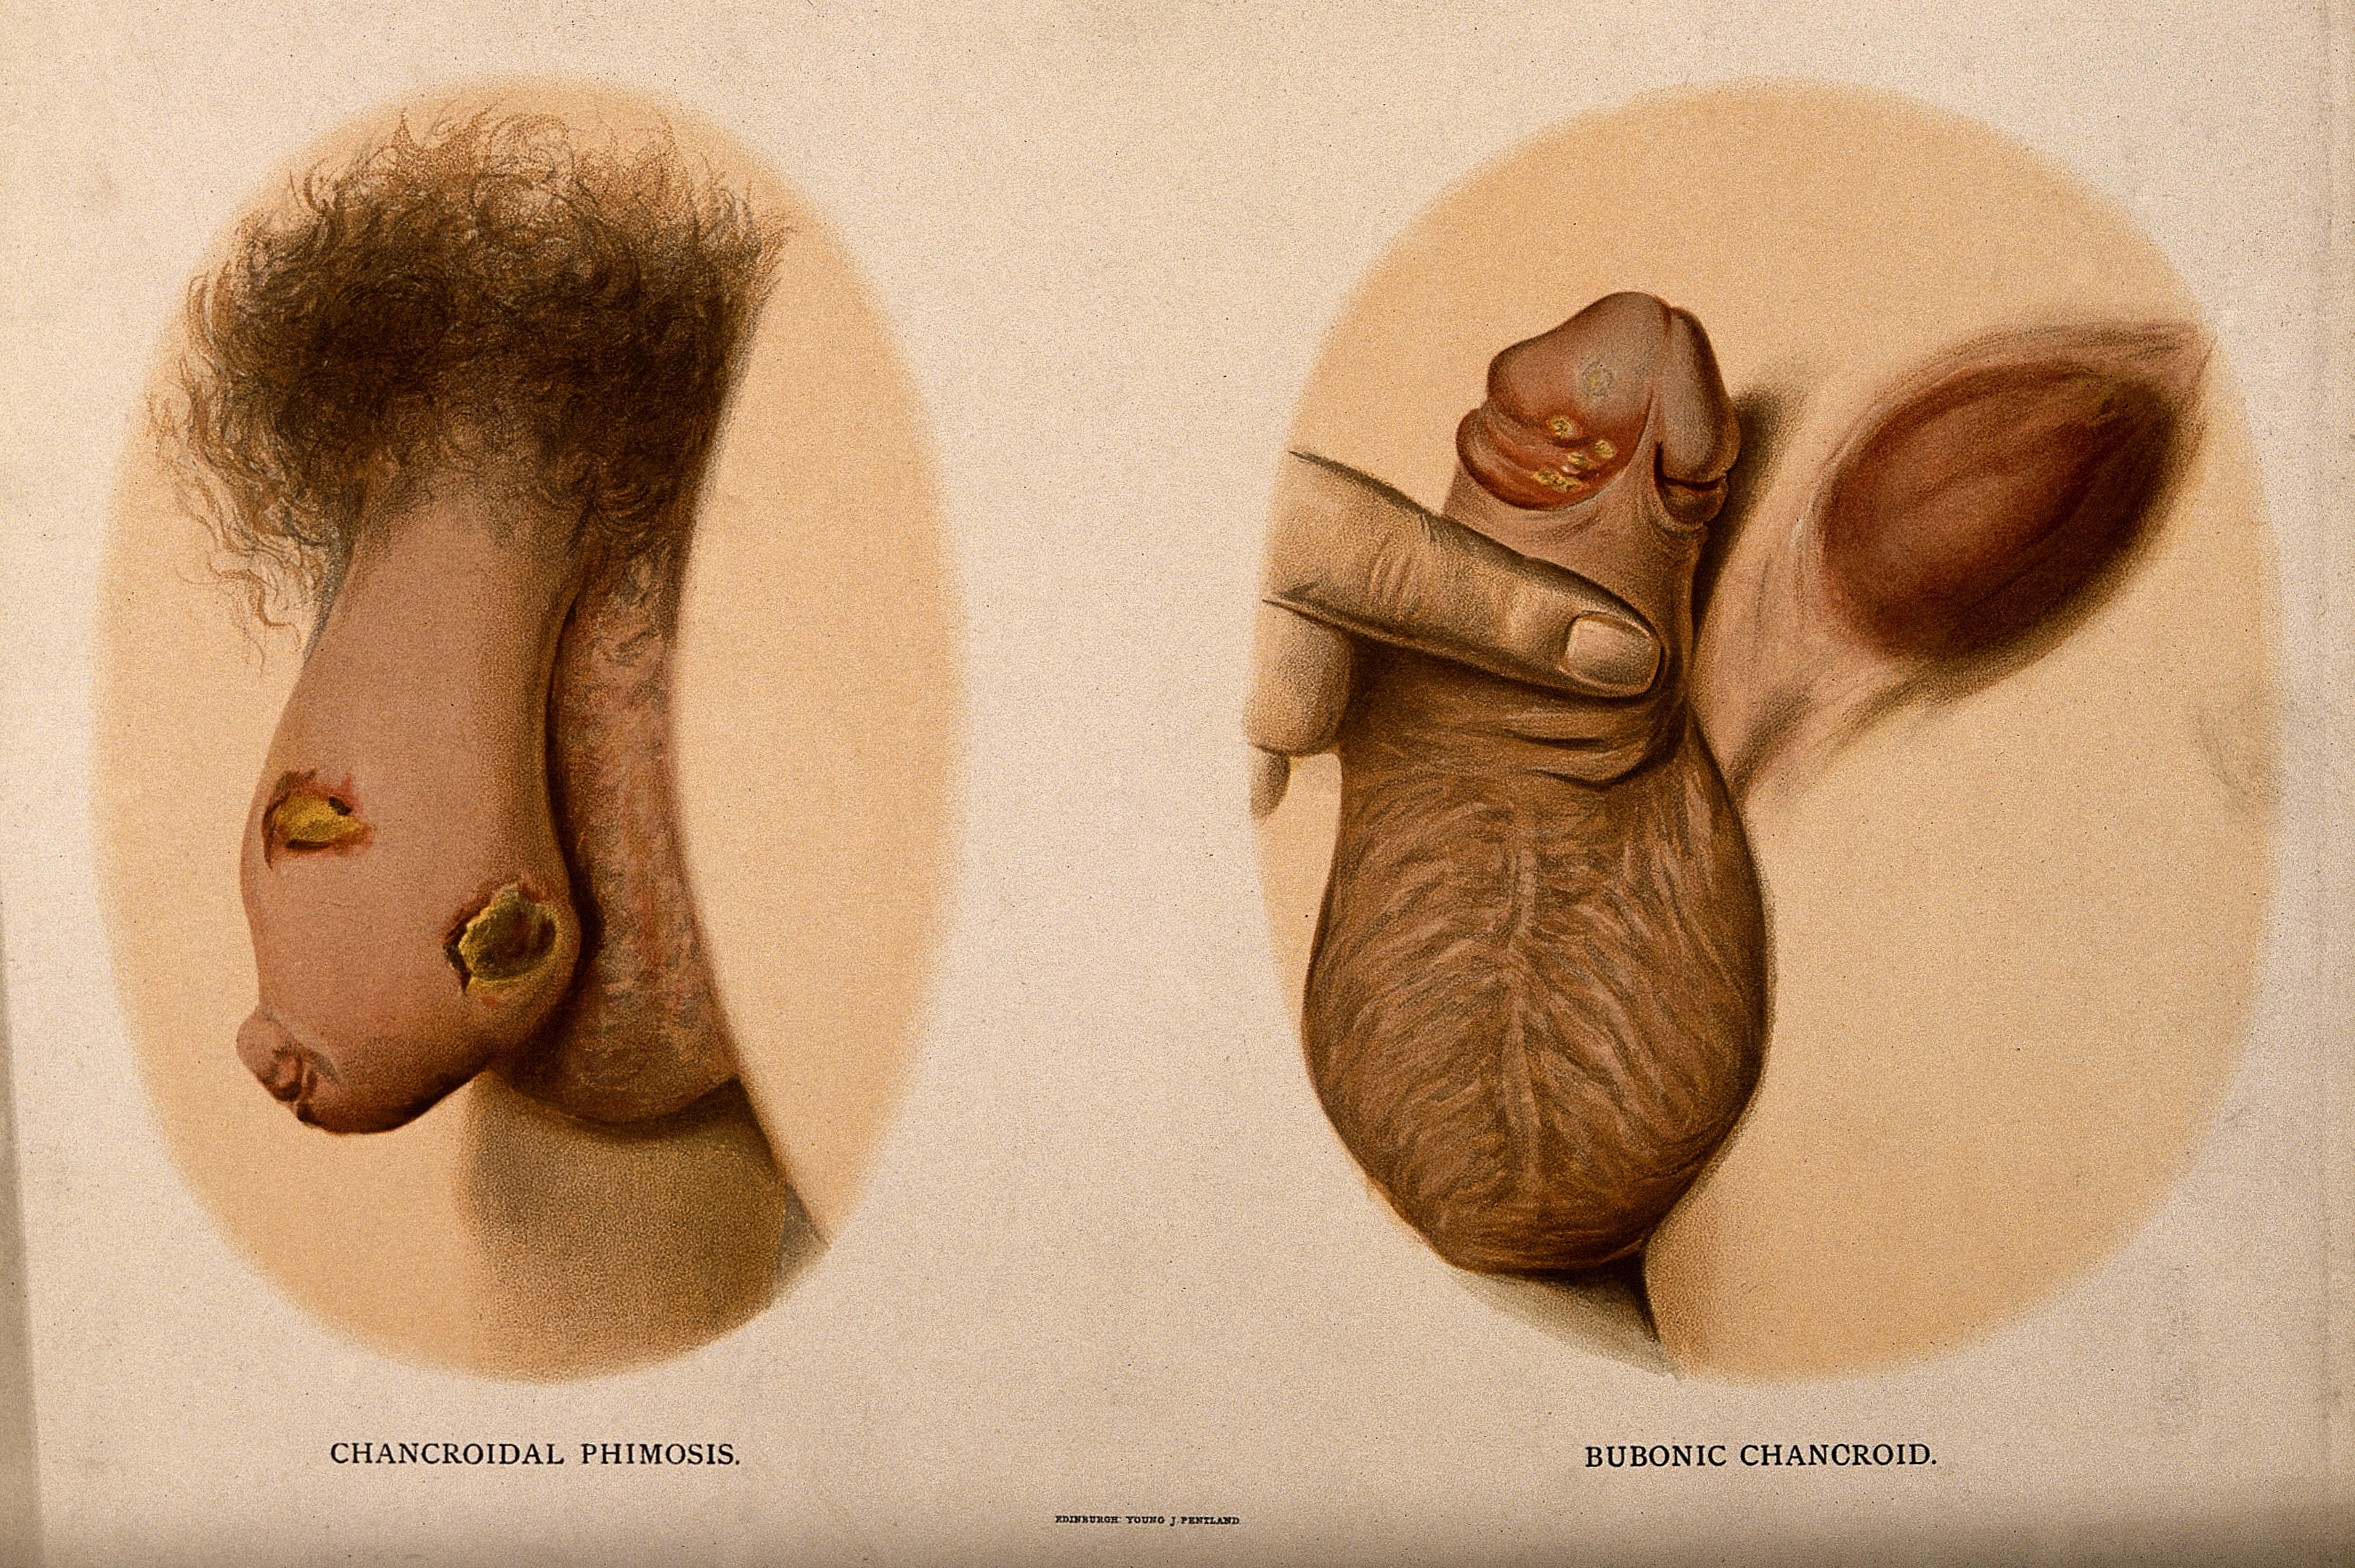 File:A penis with patches of skin disease along the shaft; and an Wellcome